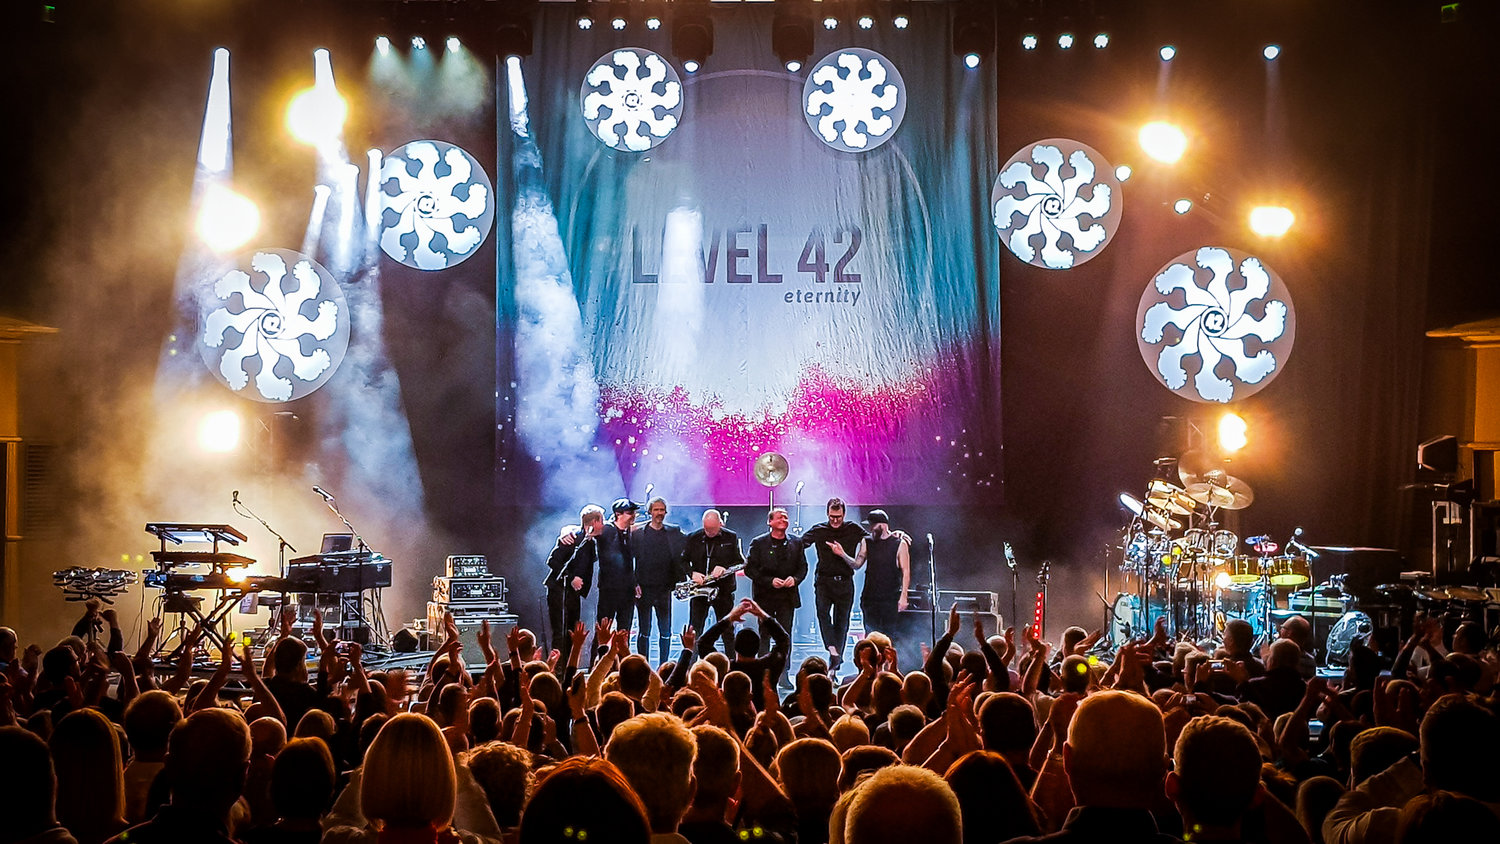 LEVEL 42 PERFORMING AT GLASGOW'S ROYAL CONCERT HALL - 02.10.2018  PICTURE BY: STEPHEN WILSON PHOTOGRAPHY